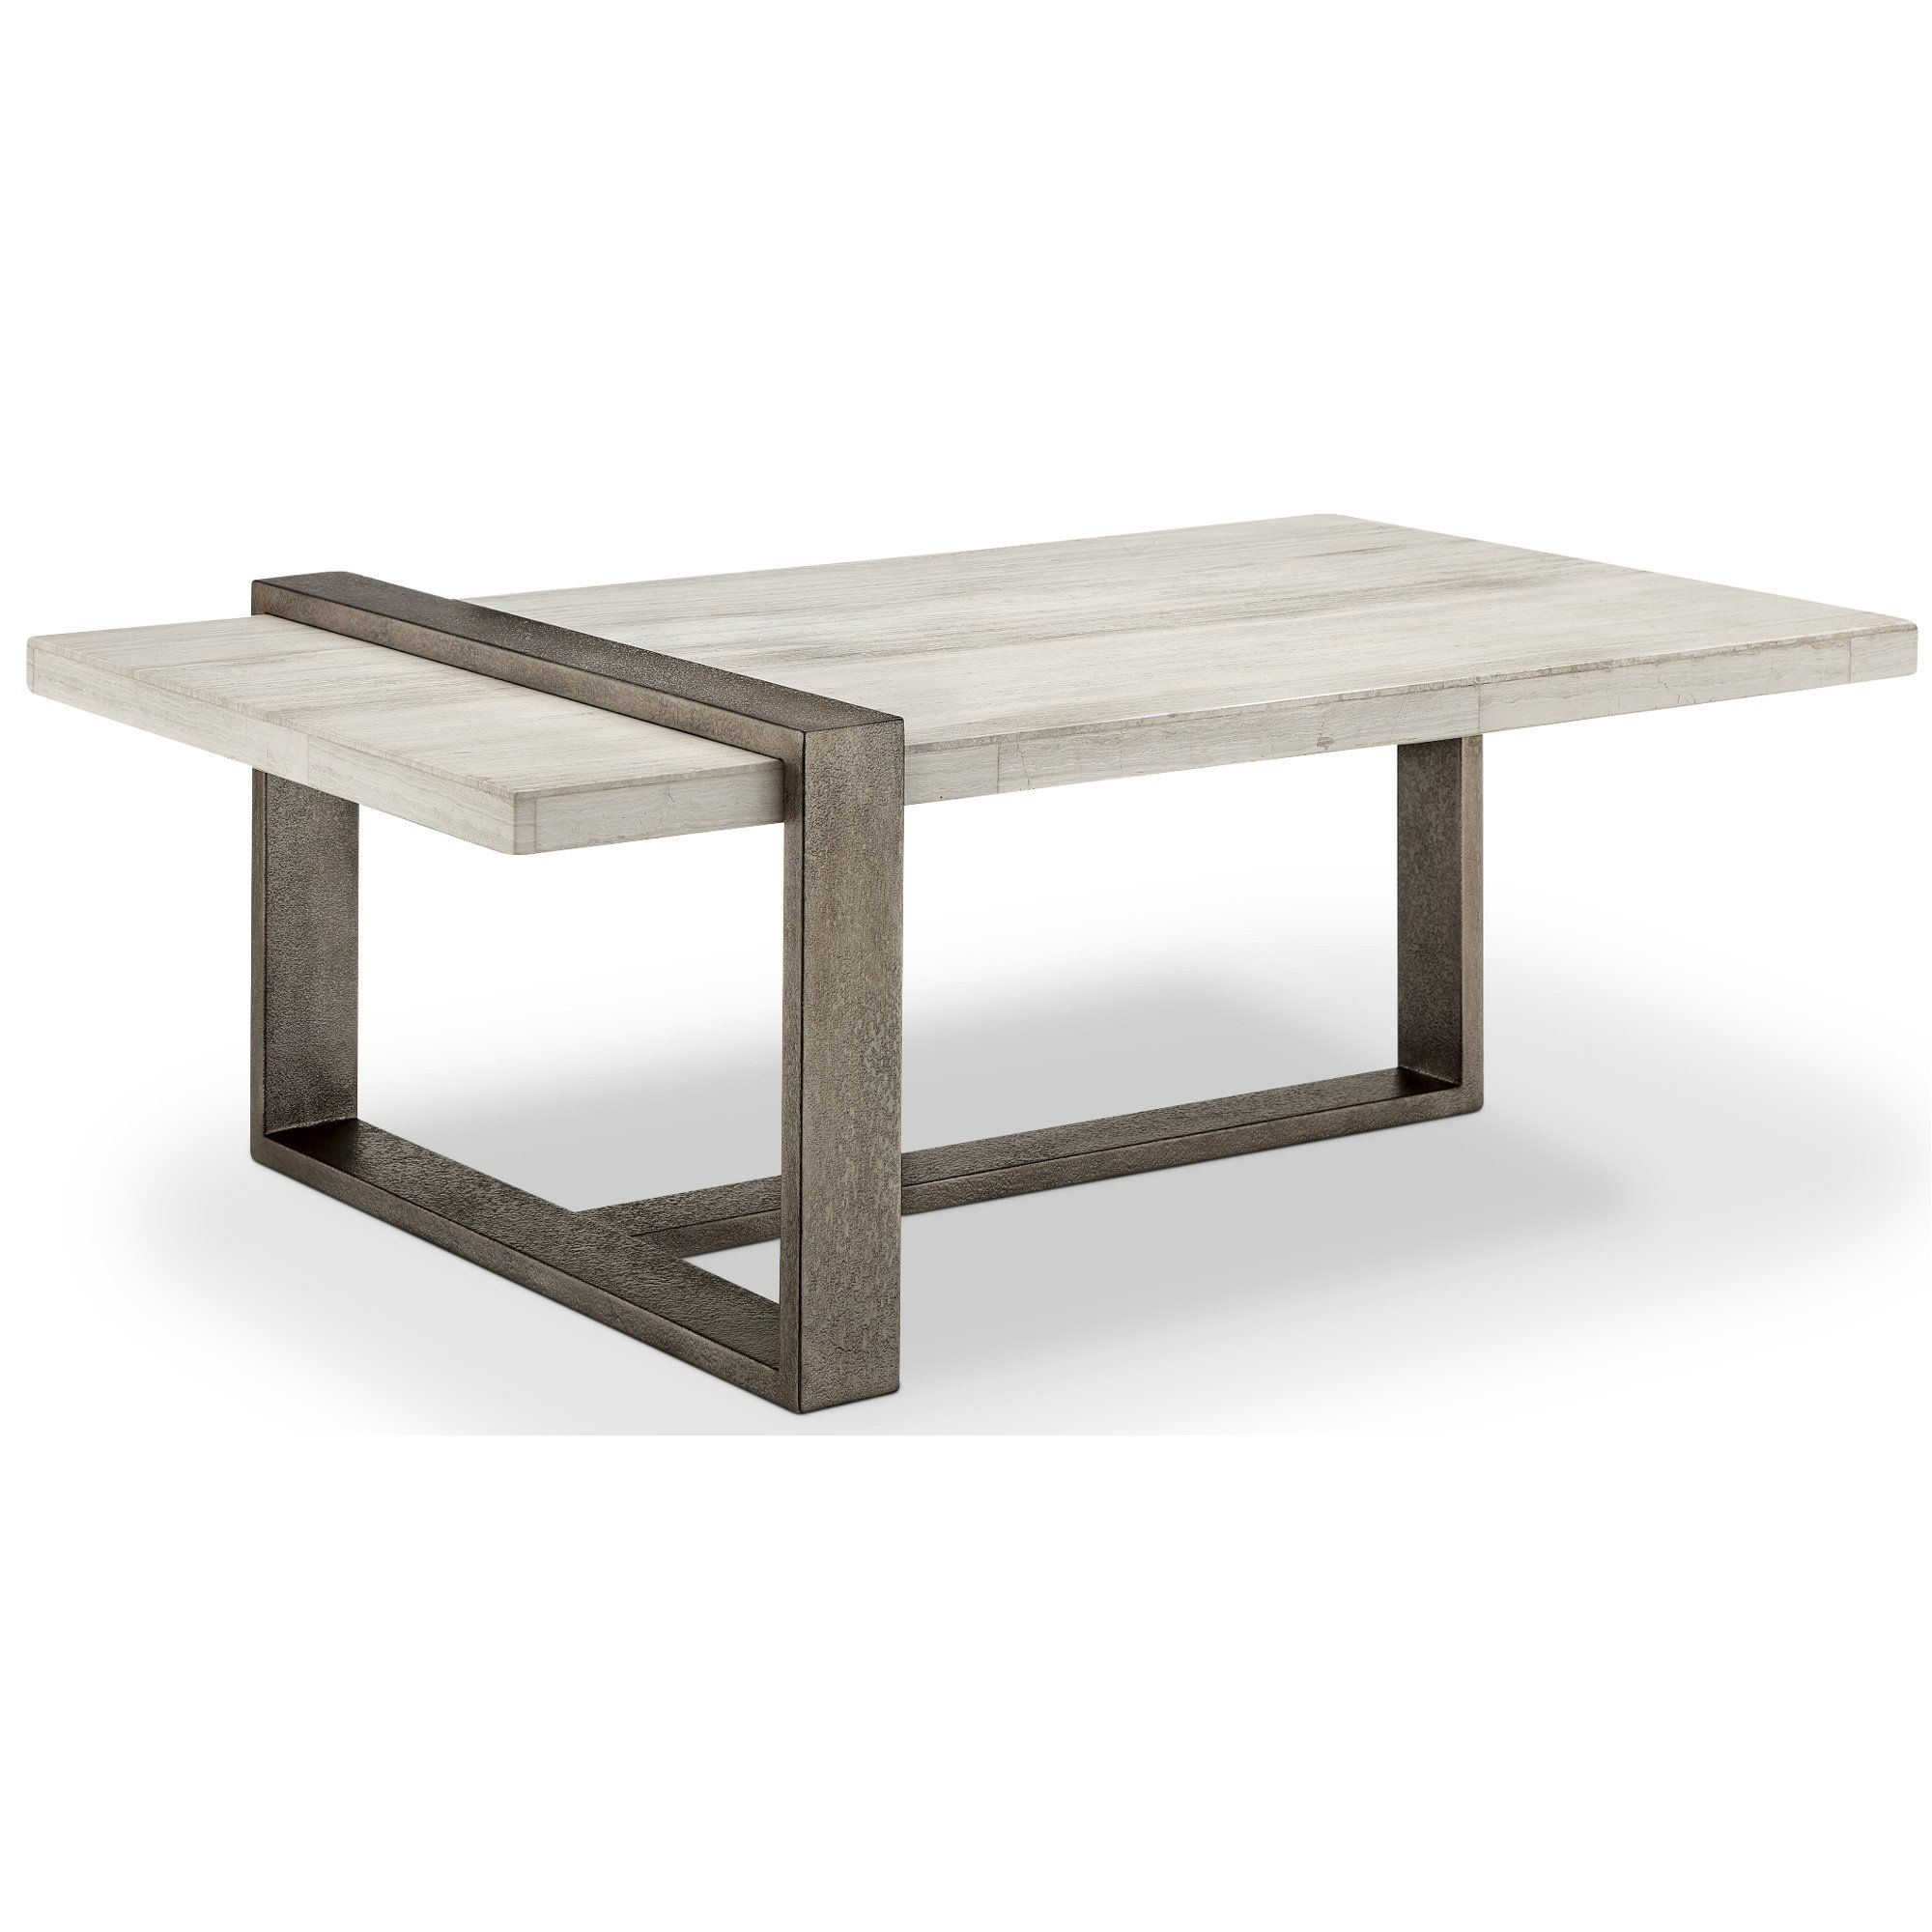 Marble Ultra Modern Coffee Table Wiltshire Coffee Table Modern Coffee Tables Contemporary Coffee Table [ 2000 x 2000 Pixel ]